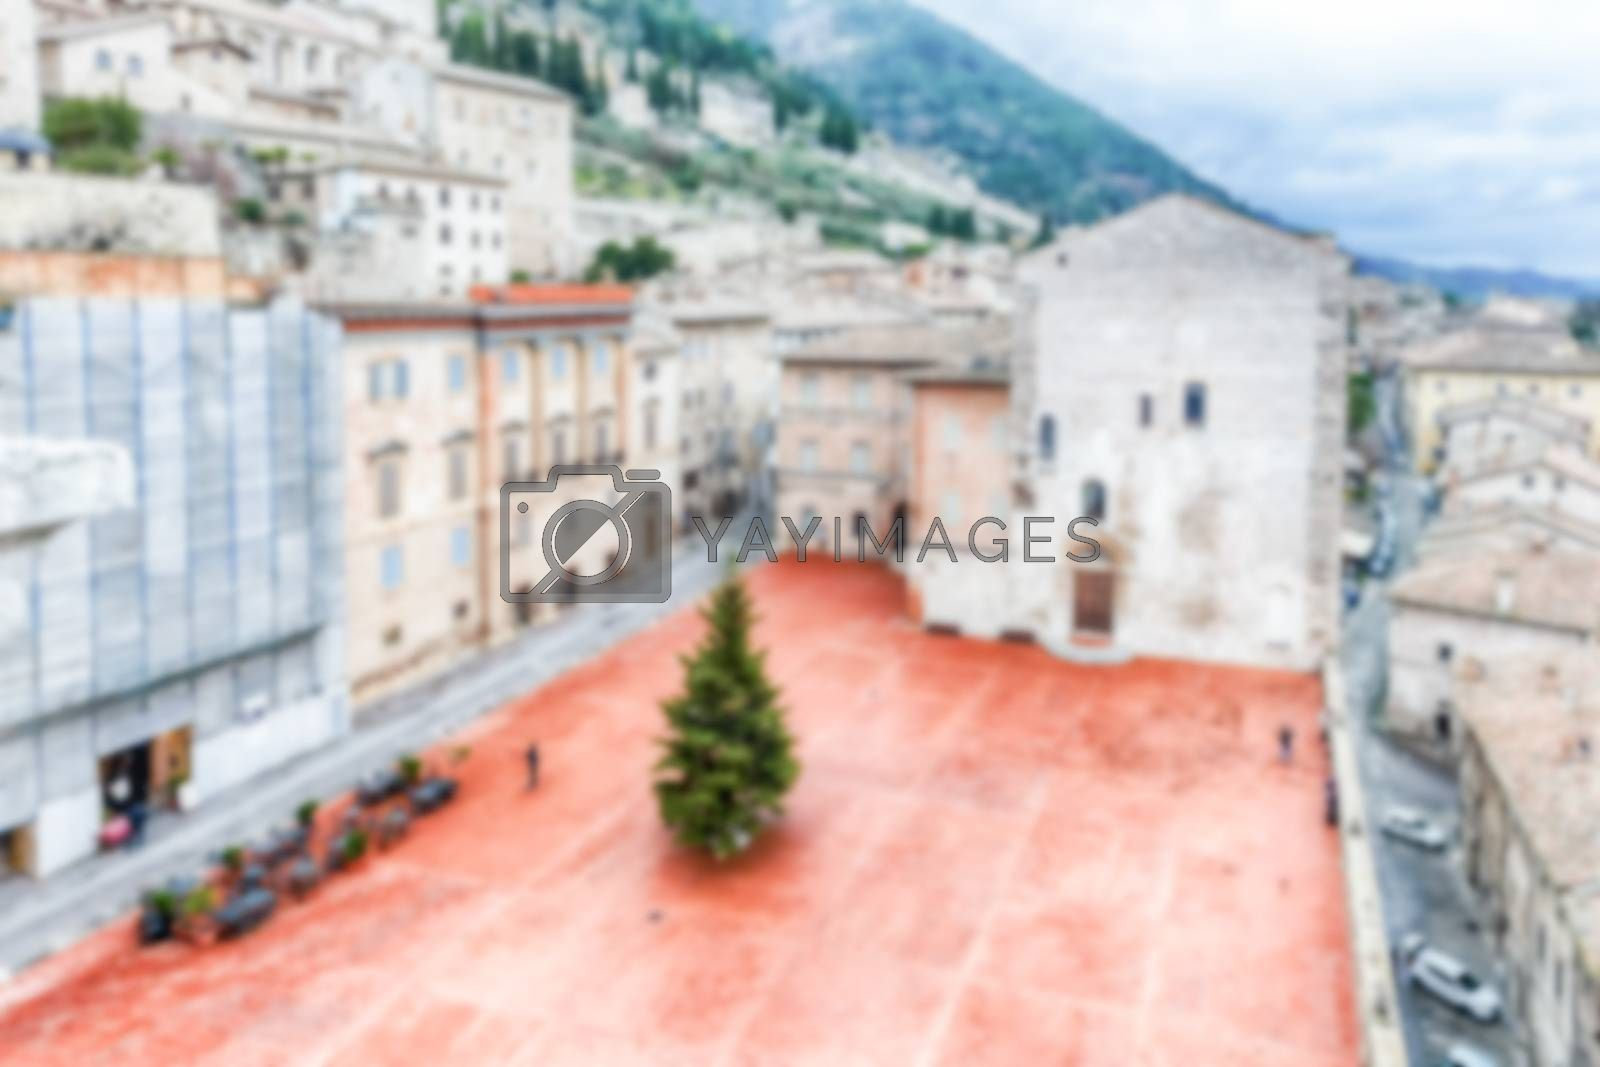 Defocused background of Piazza Grande, scenic main square in Gubbio, Italy. Intentionally blurred for bokeh effect